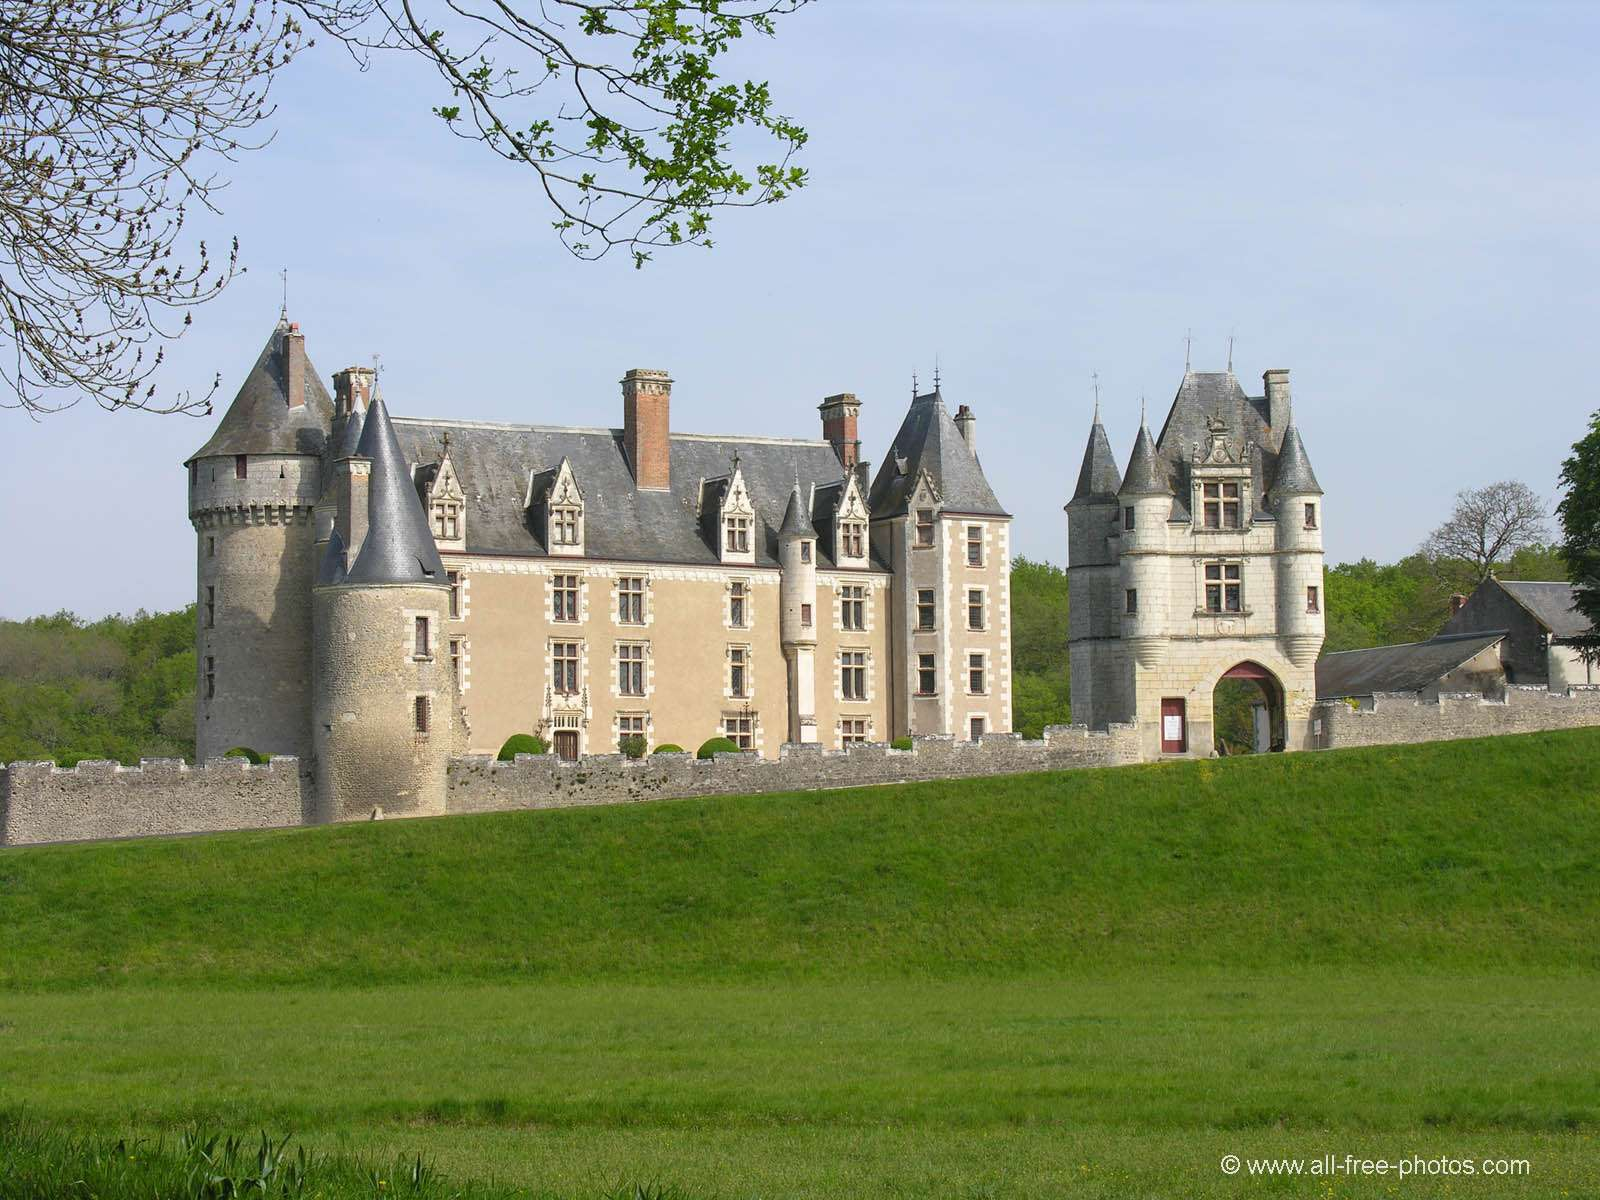 http://www.all-free-photos.com/images/chateaux-4/PI6027-hr.jpg